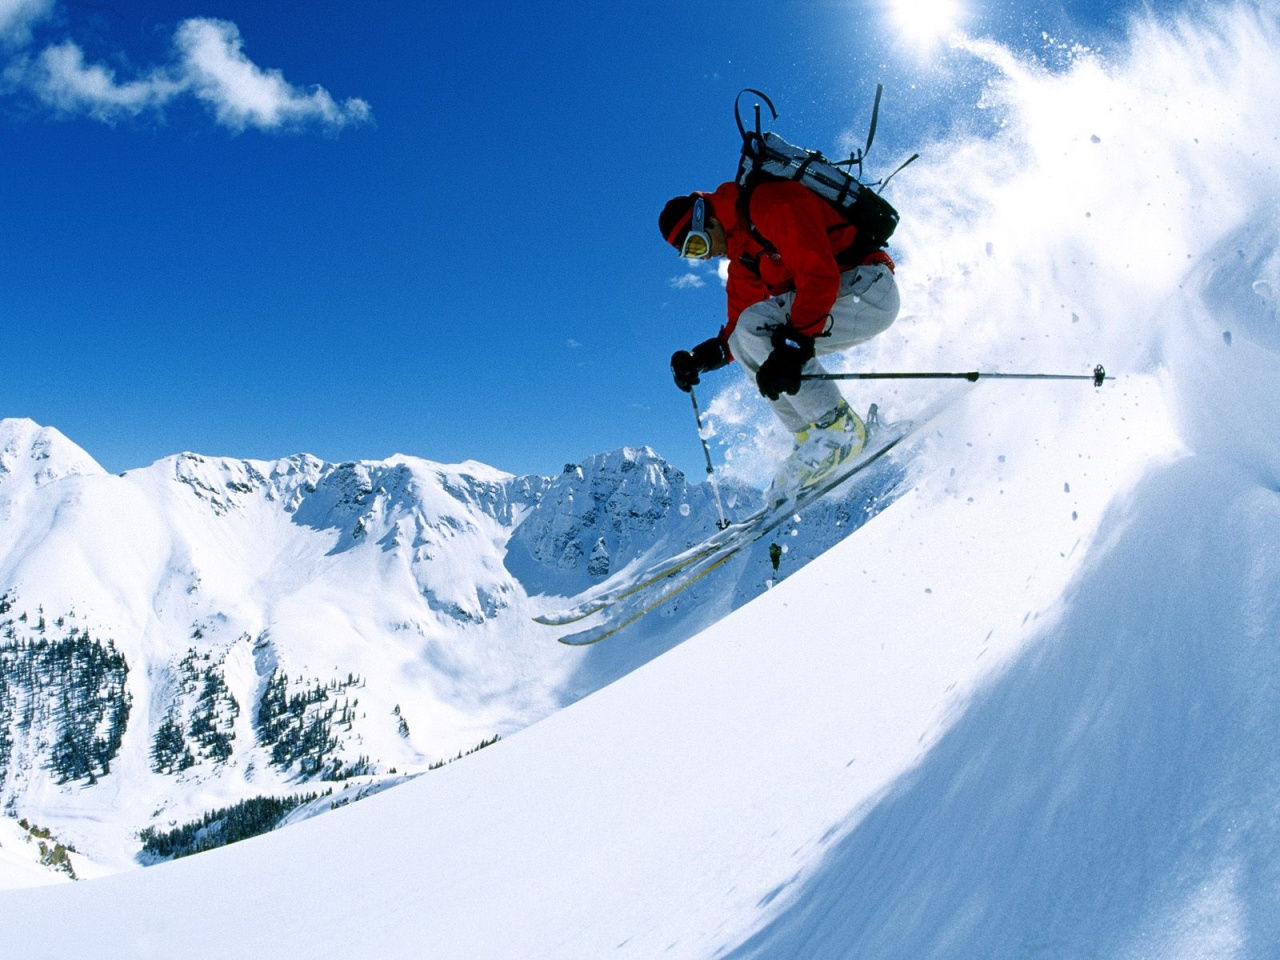 http://3.bp.blogspot.com/_oCEA7DBXyqs/TQDqsmSeCkI/AAAAAAAAD9U/O6U6hIcx_W4/s1600/perfect-powder-day-wallpapers_6741_1280x1024.jpg